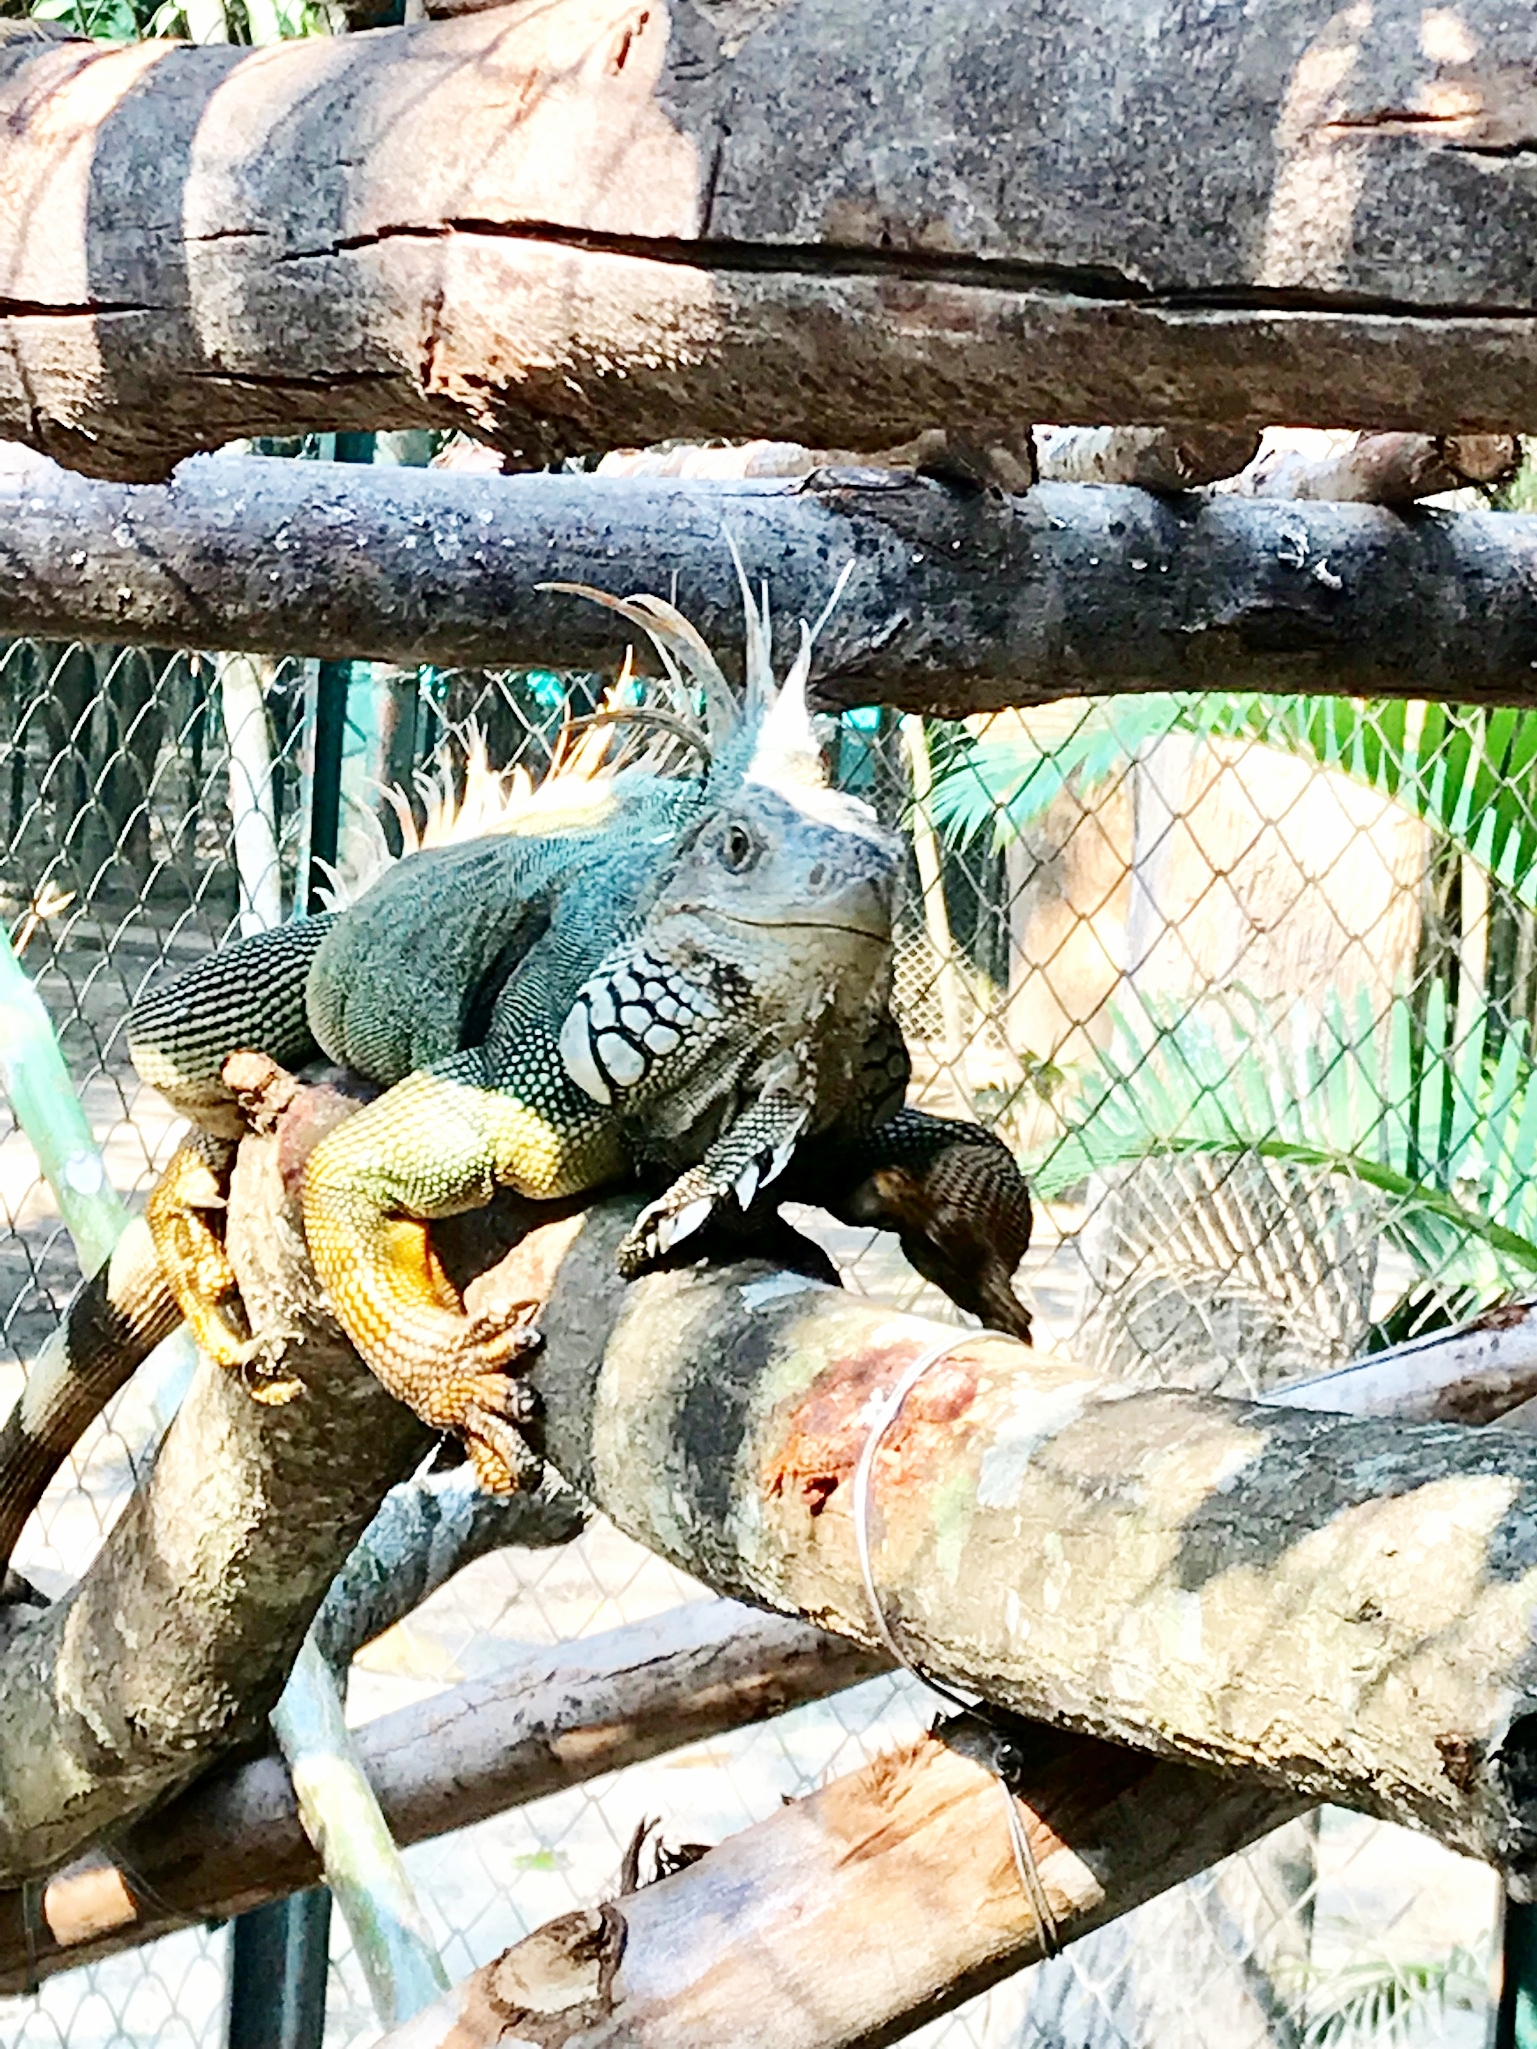 One of the resident iguanas at WFFT